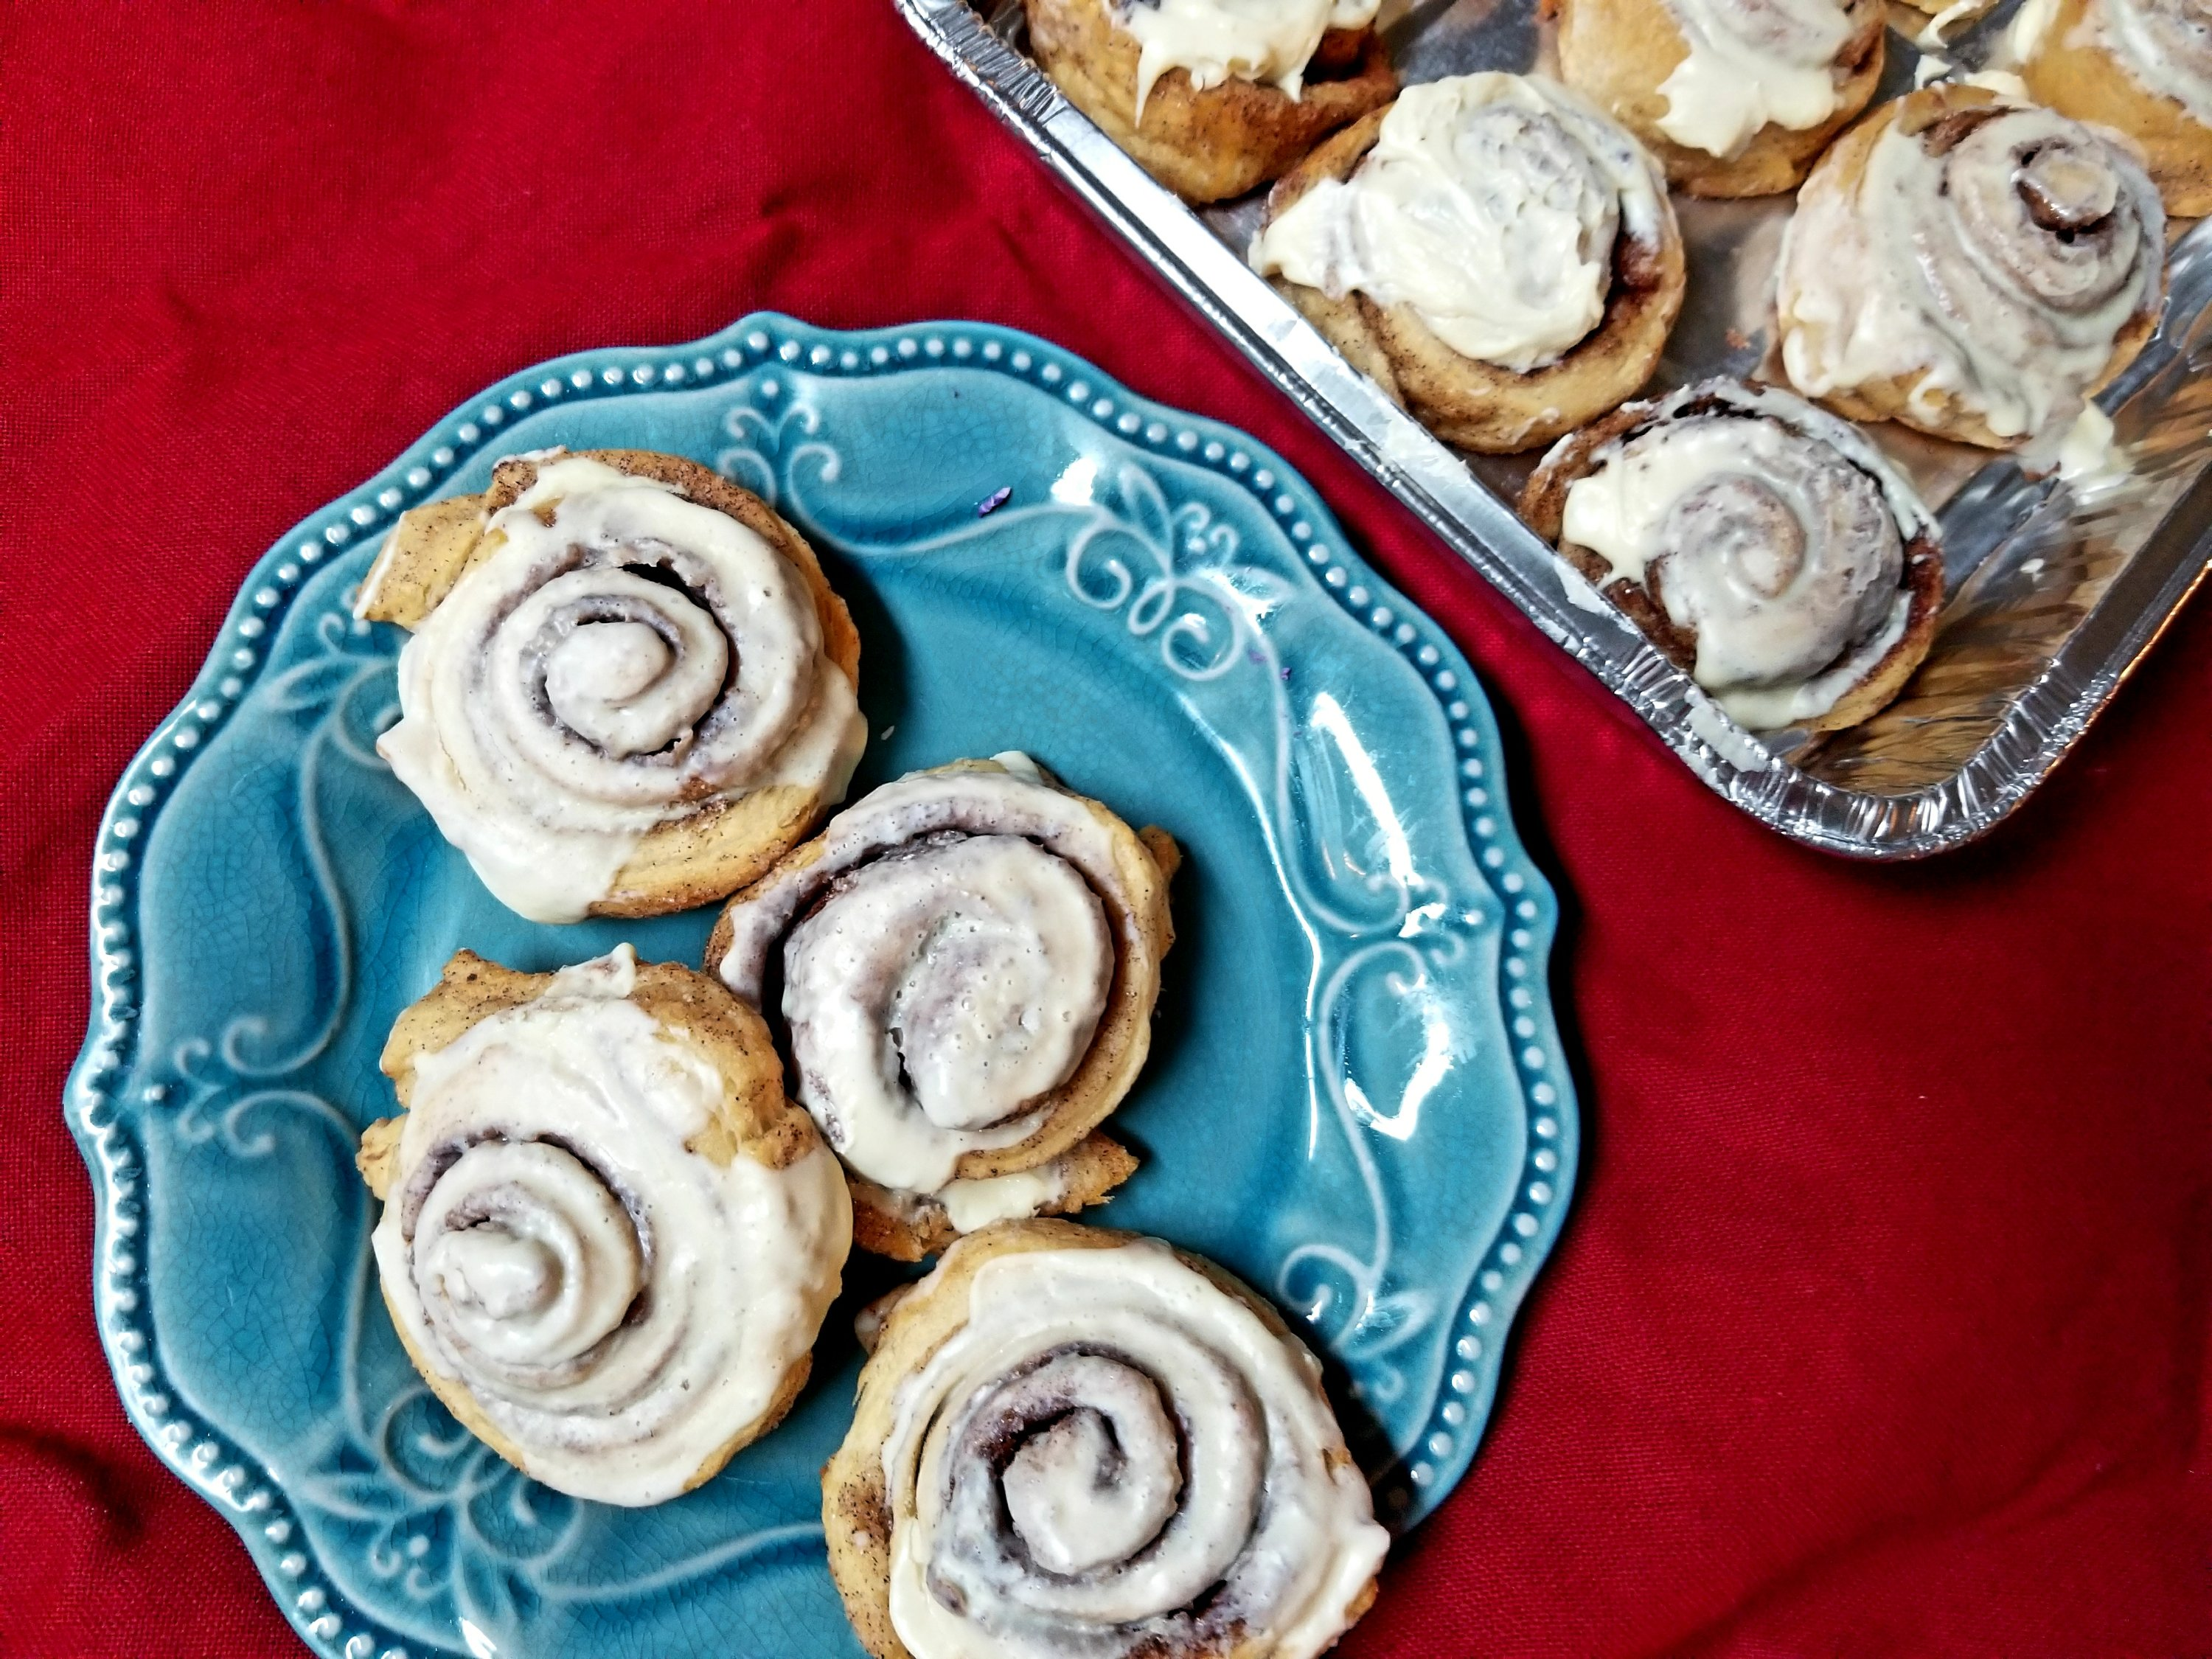 These Super Easy Semi Homemade Cinnamon Rolls are amazing! It only takes minutes to make and tasks like it took hours to make. They are gooey and sweet and hit the spot!